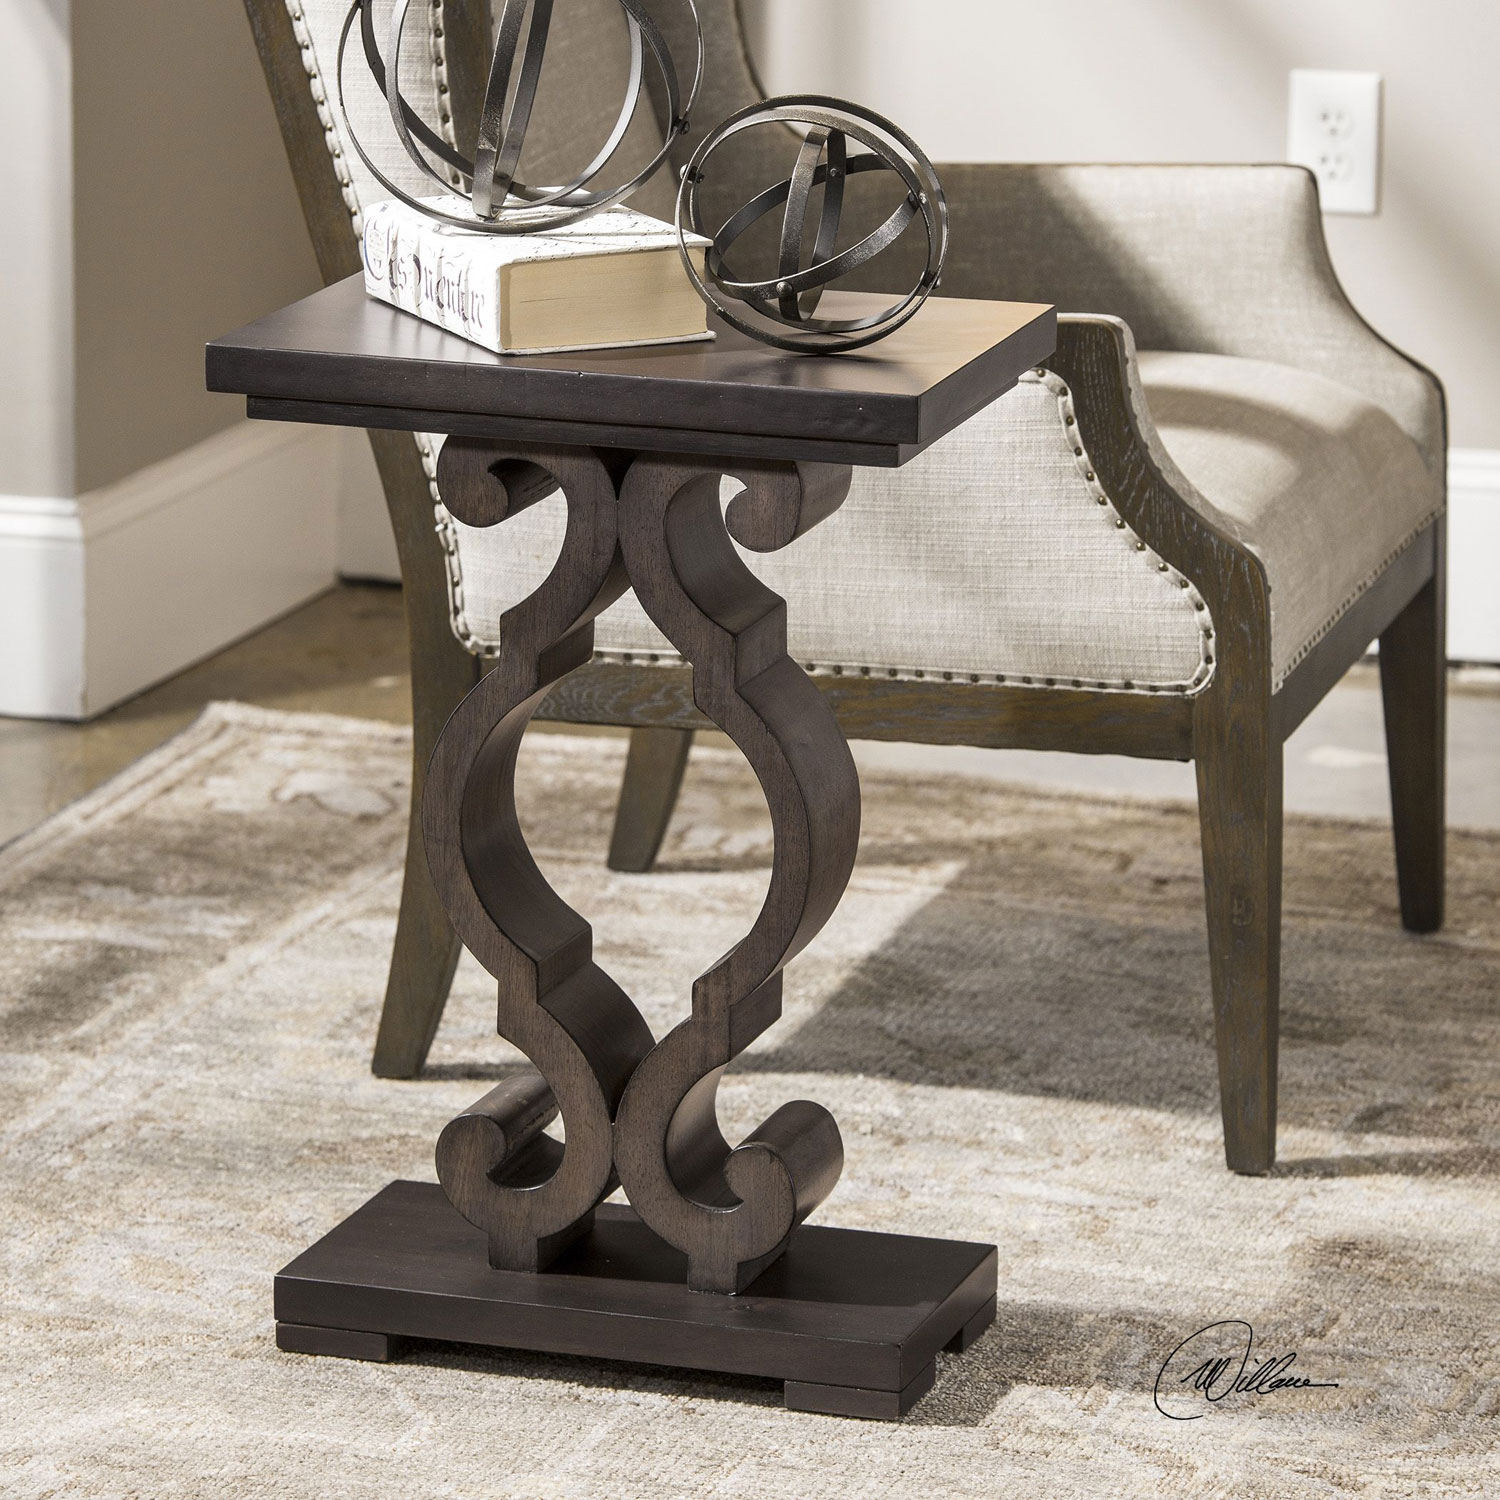 uttermost parina ebony accent table bellacor blythe hover zoom drop leaf dining octagon side modular furniture silver metal console old coffee glass decor mirrored hall leather